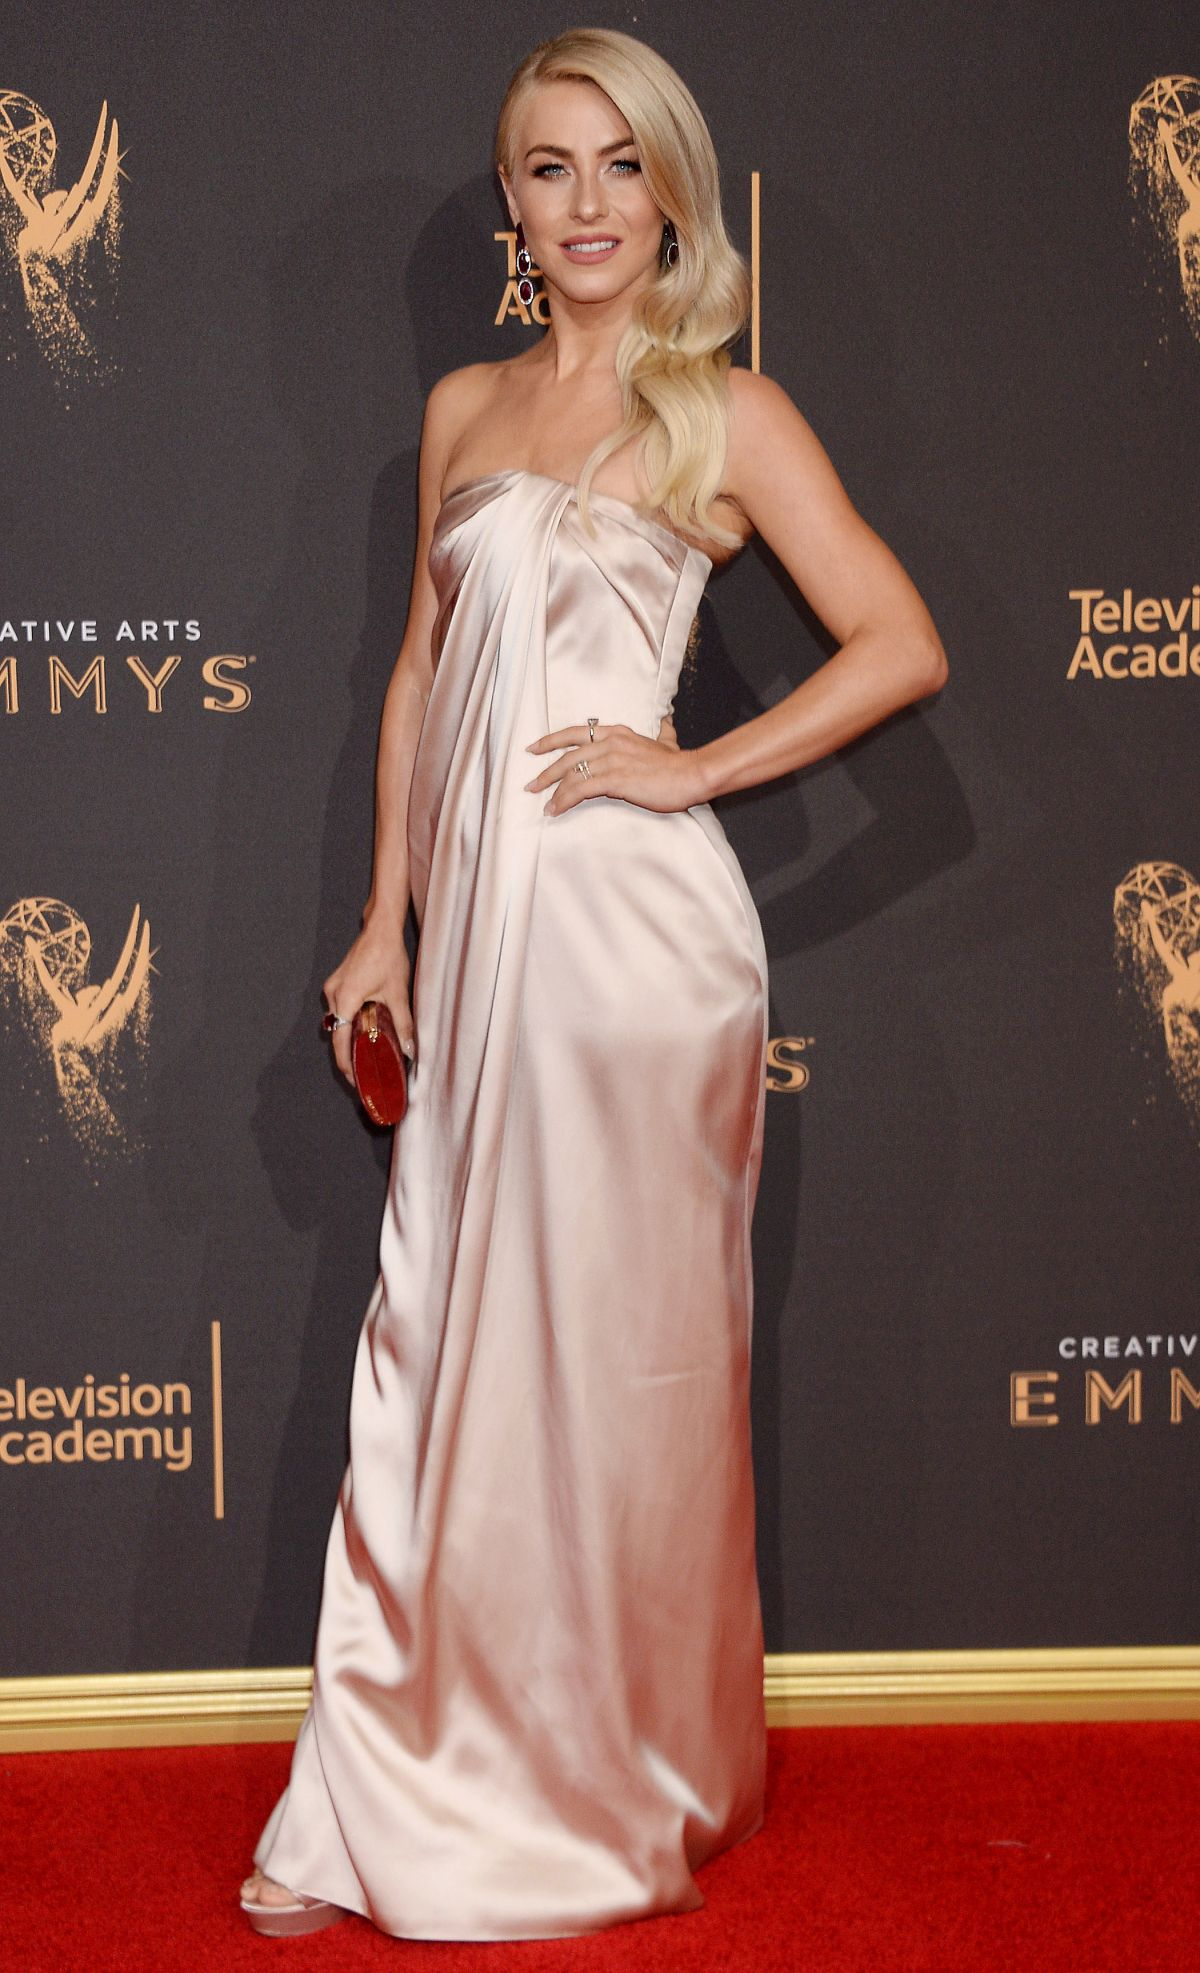 JULIANNE HOUGH at 2017 Creative Arts Emmy Awards in Los Angeles 09/09/2017